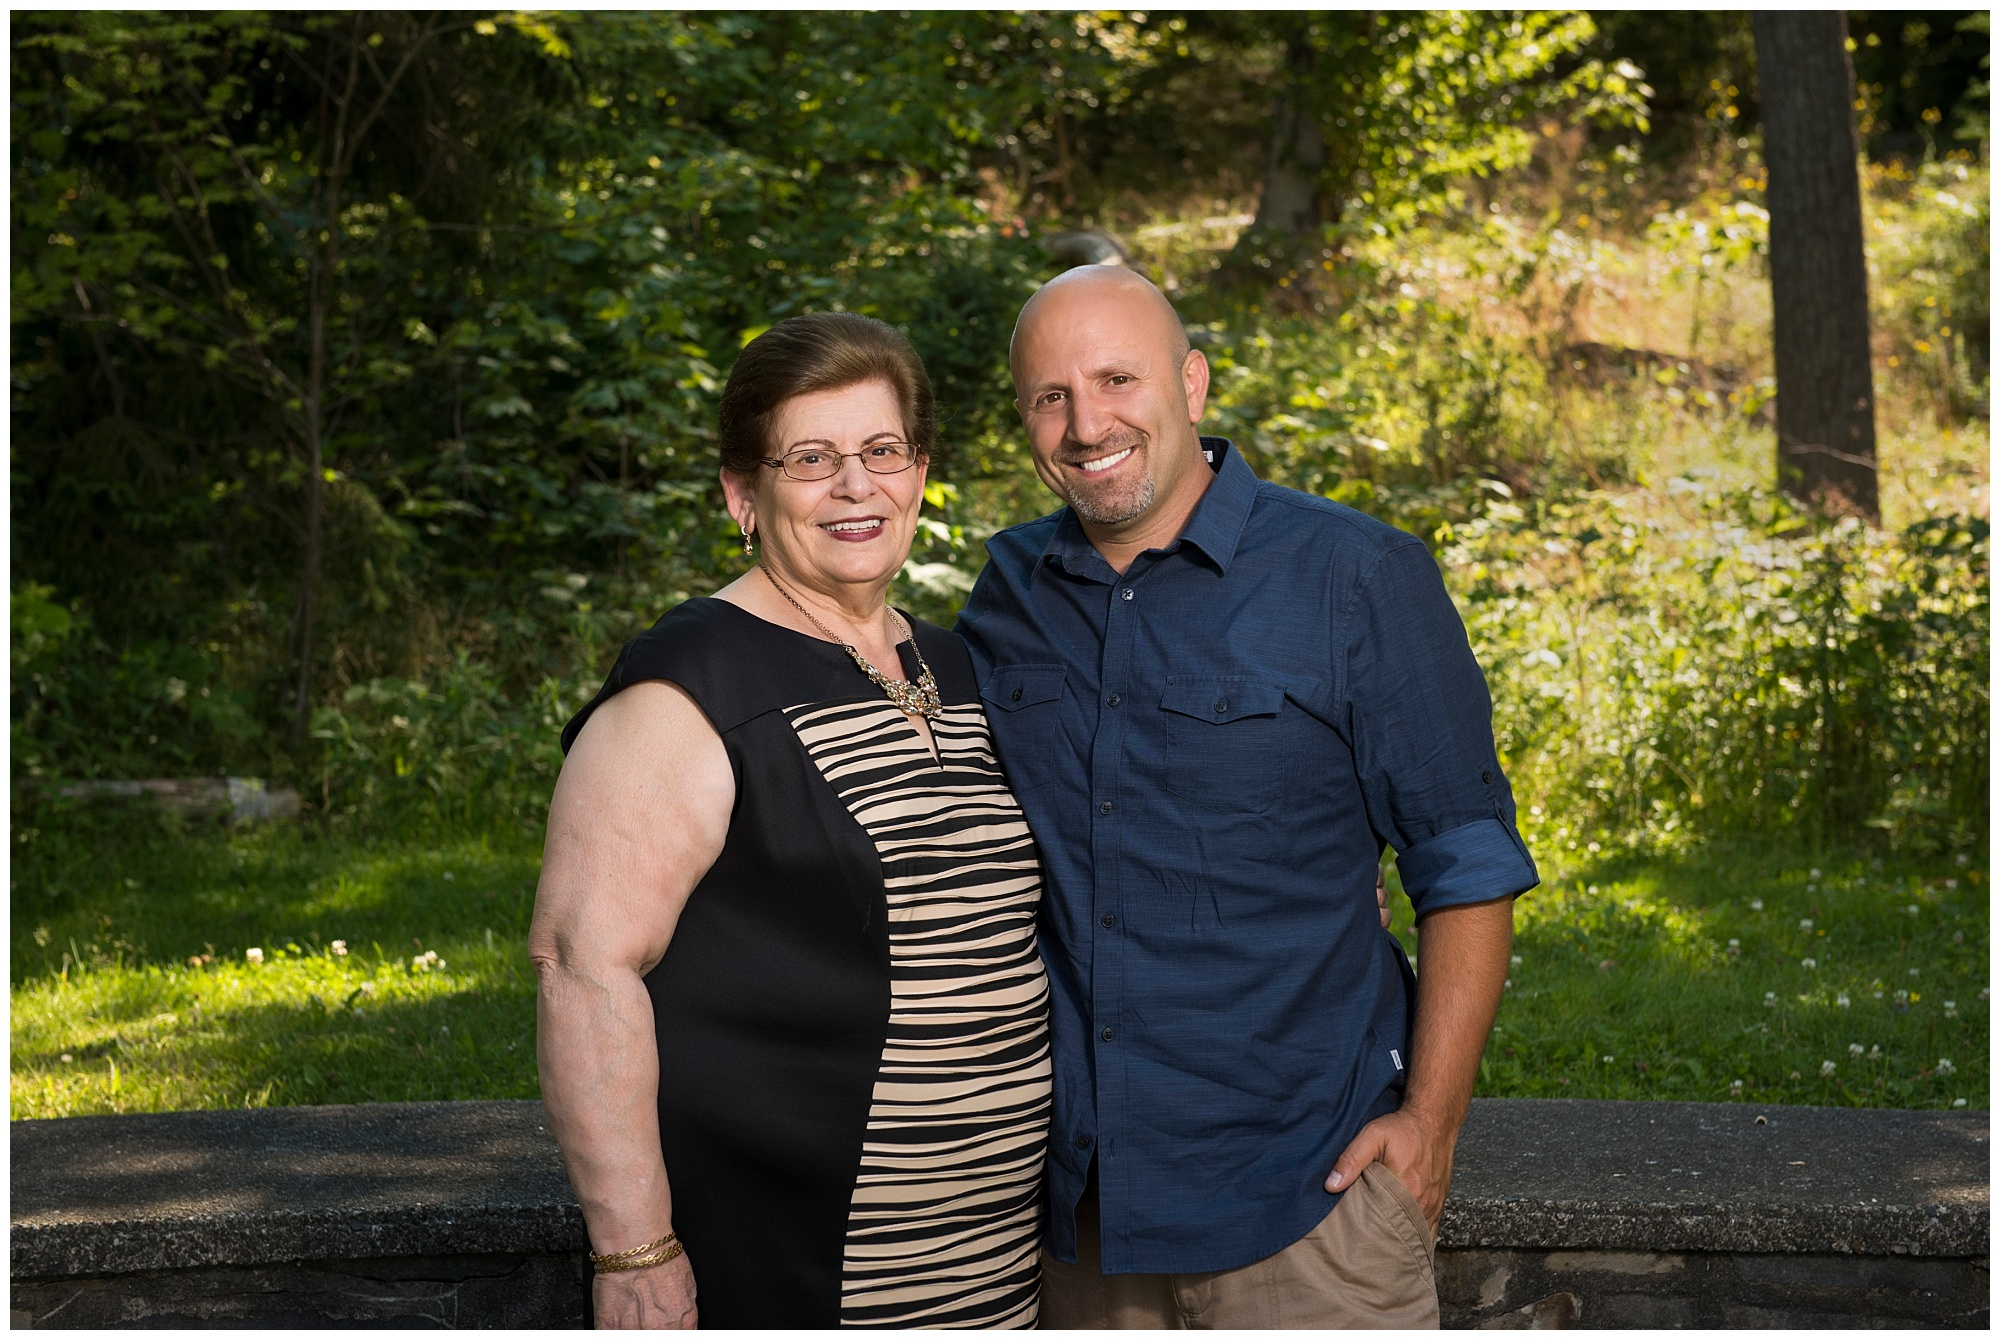 Jreige family photography